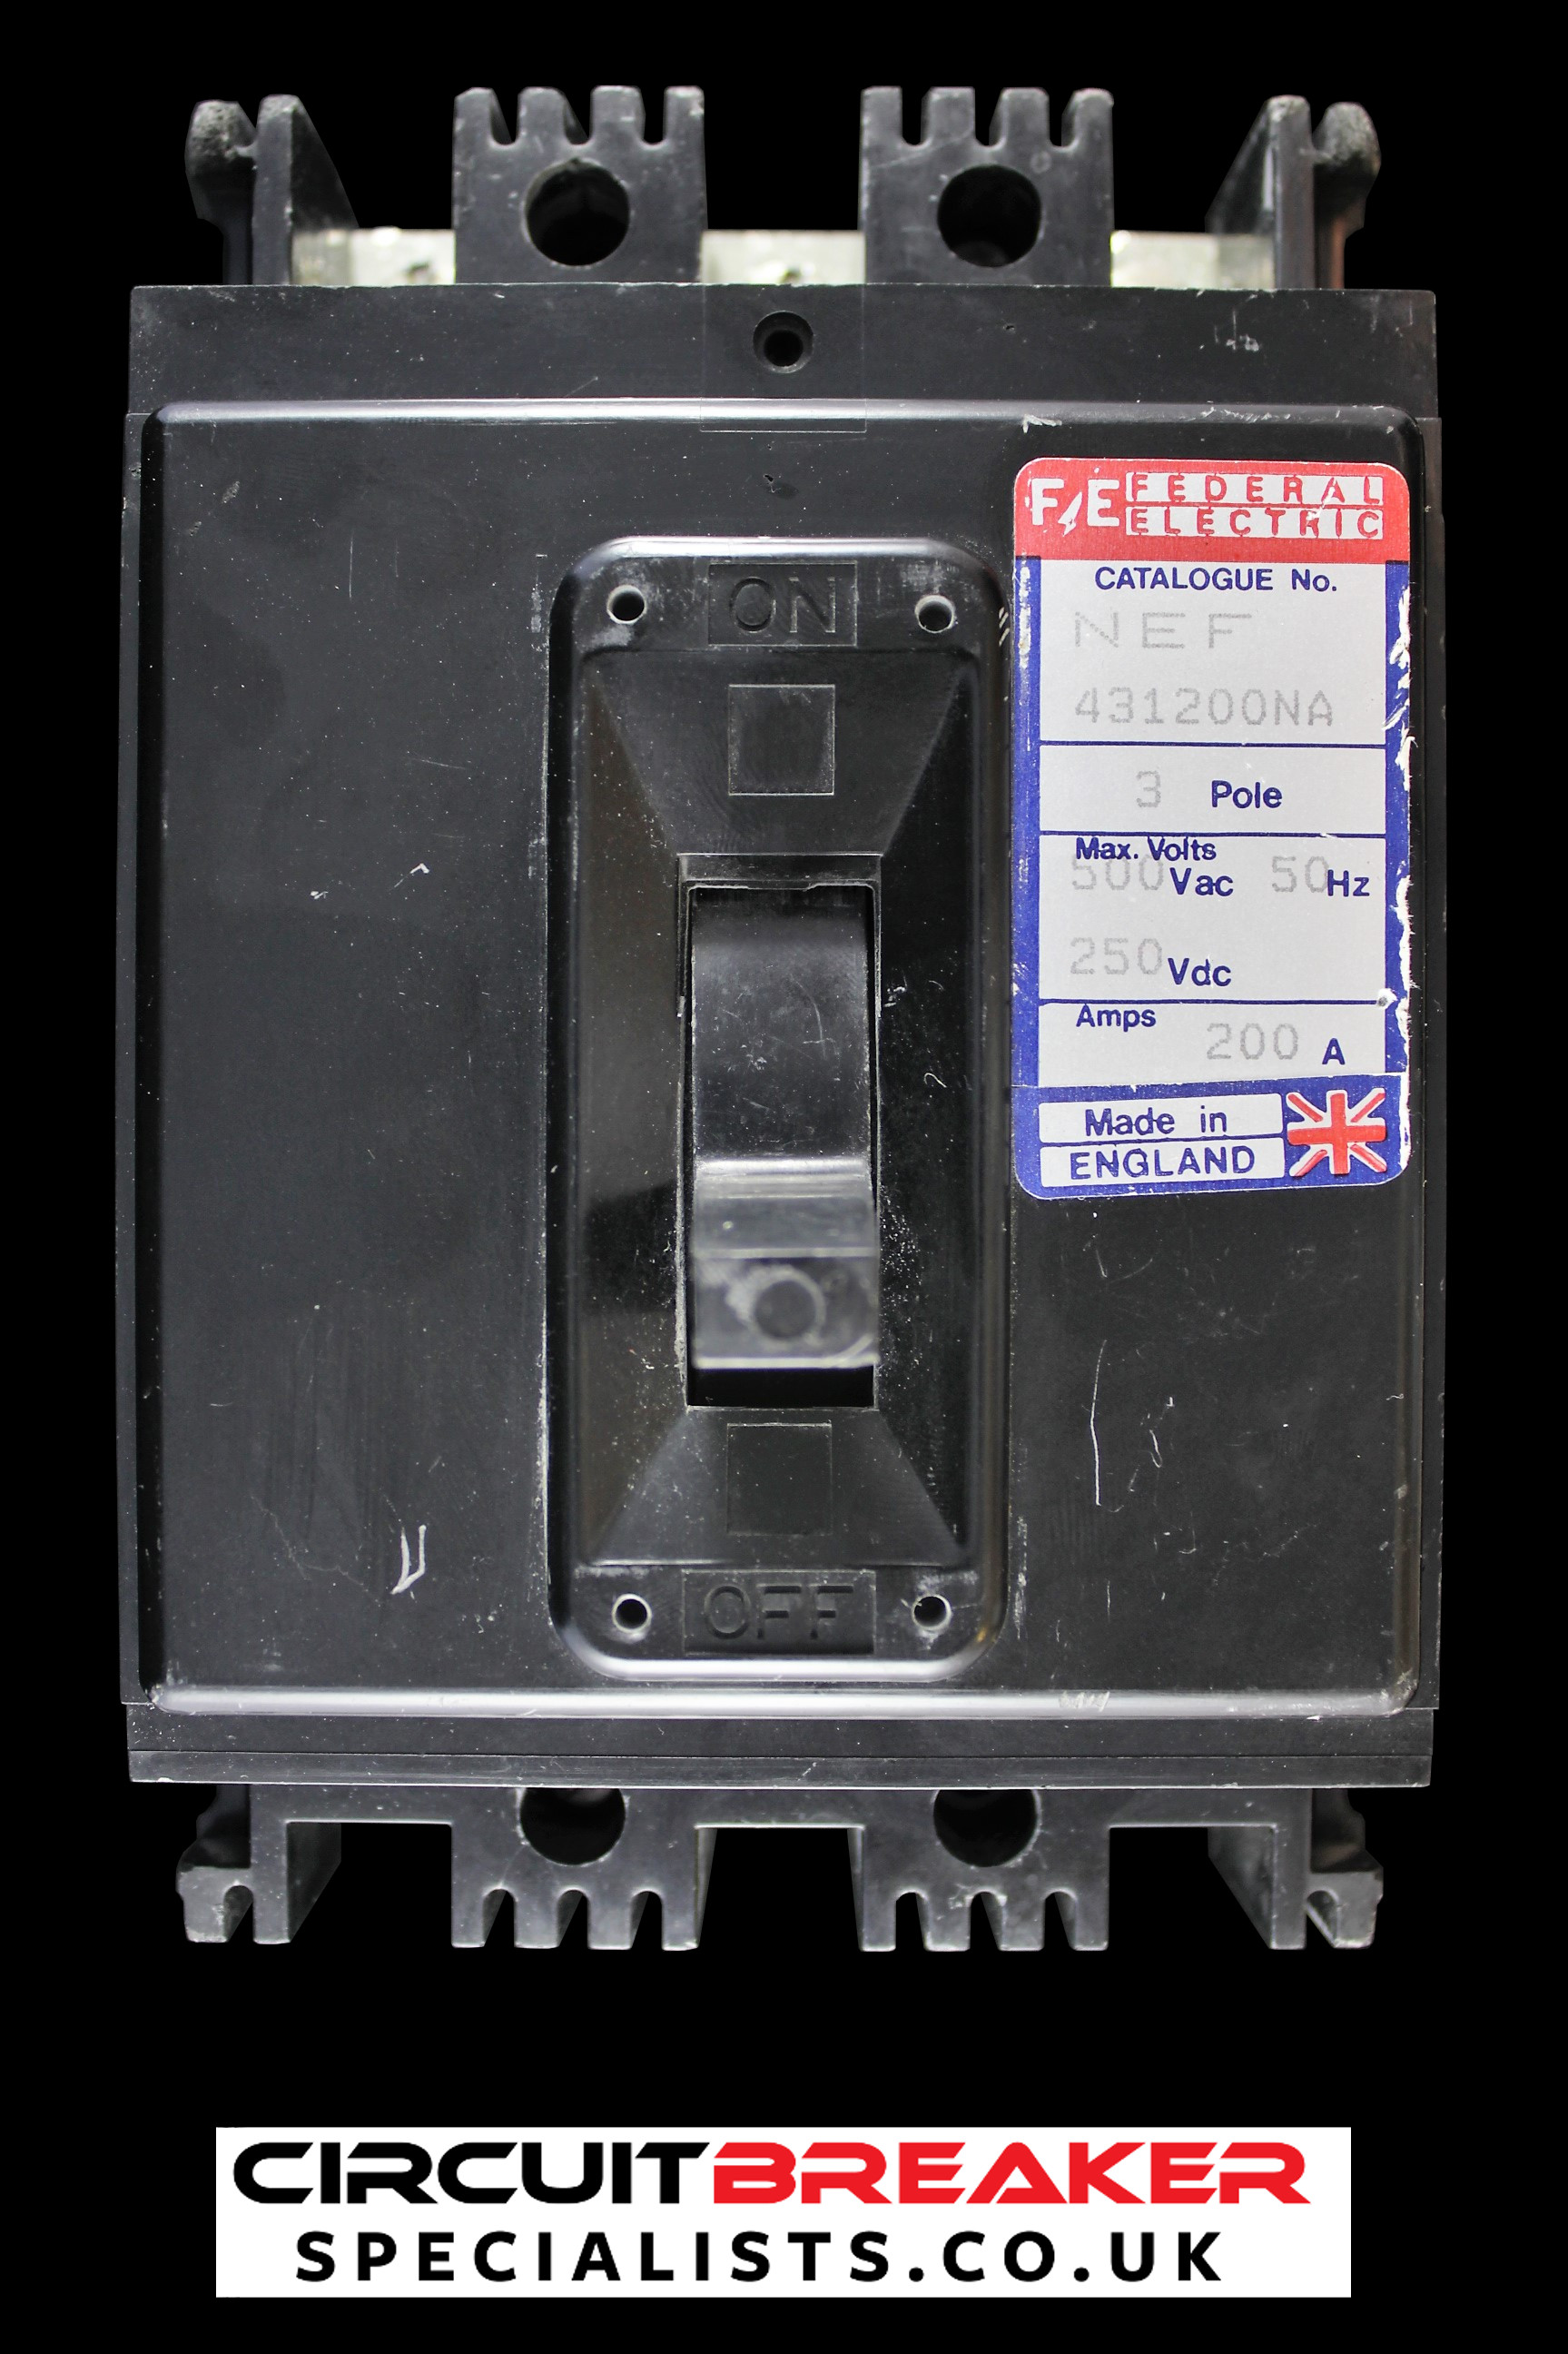 FEDERAL ELECTRIC 200 AMP TRIPLE POLE MCCB NEF 431200NA